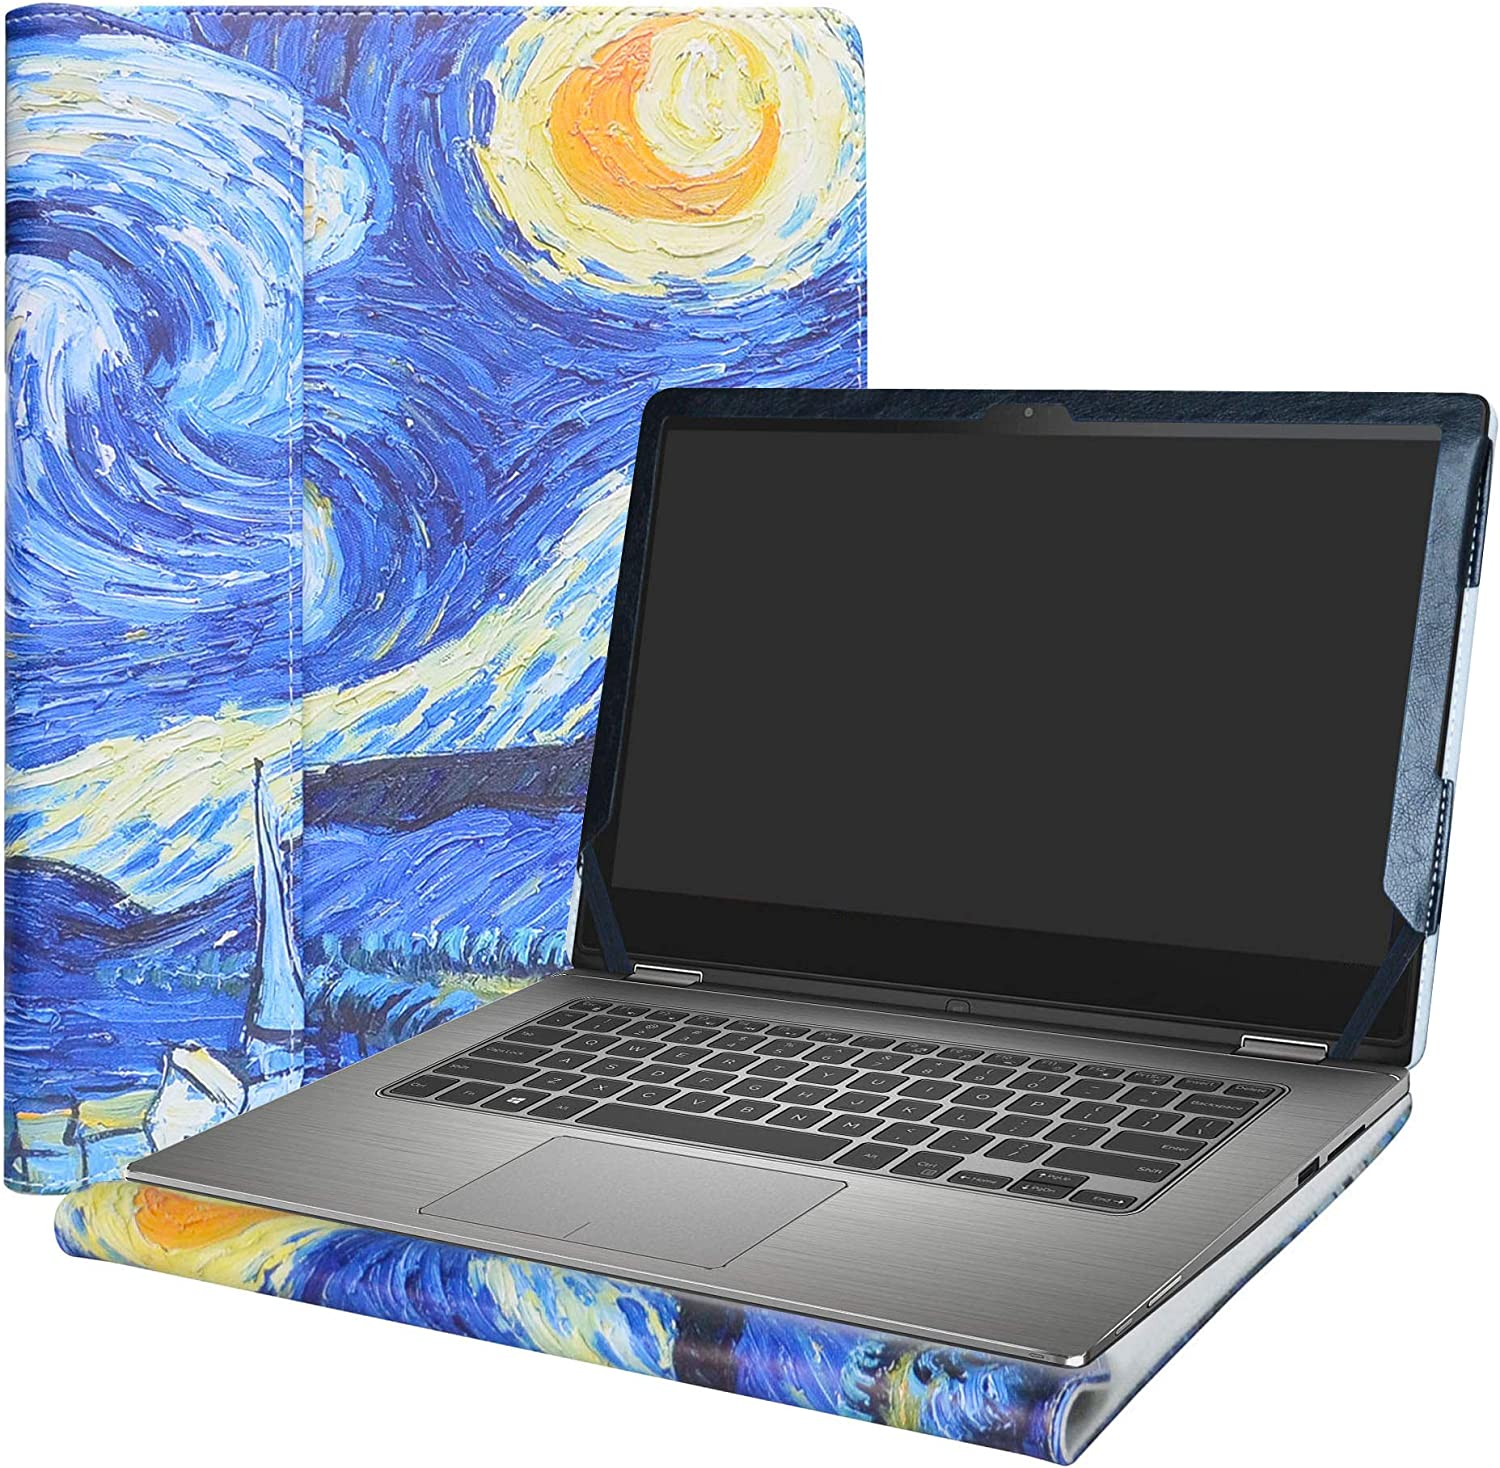 """Alapmk Protective Case Cover for 13.3"""" Dell Inspiron 13 2-in-1 7359 7353 7352 7348 7347 Series Laptop(Warnig:Not fit Inspiron 13 2-in-1 7378 7375 7368 7373),Starry Night"""